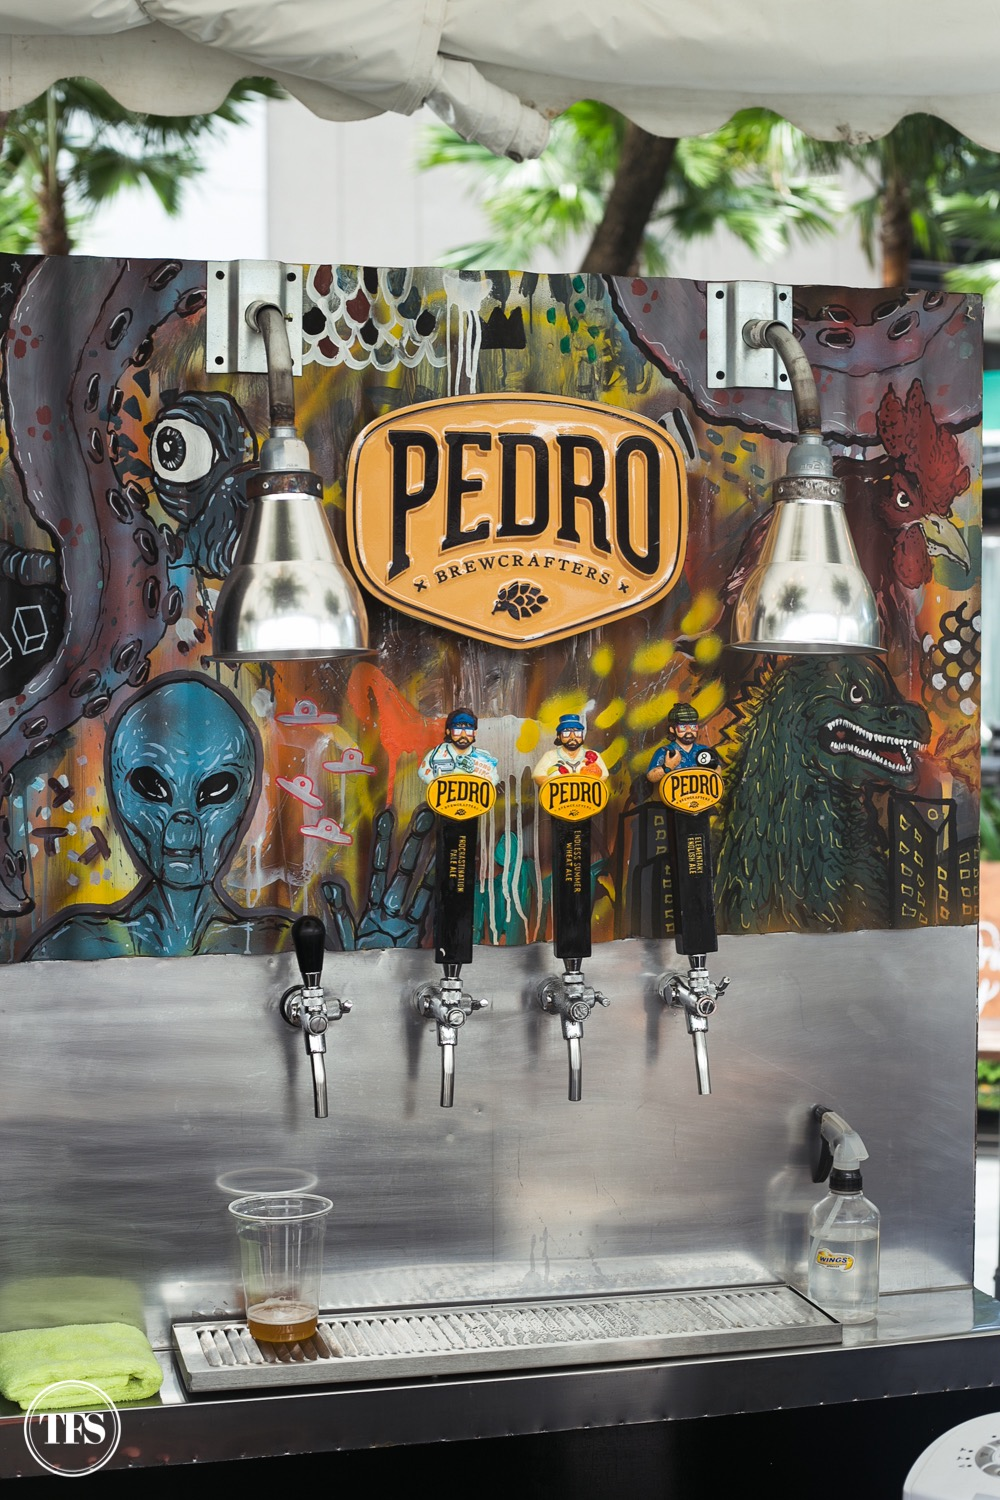 Pedro Brewcrafters